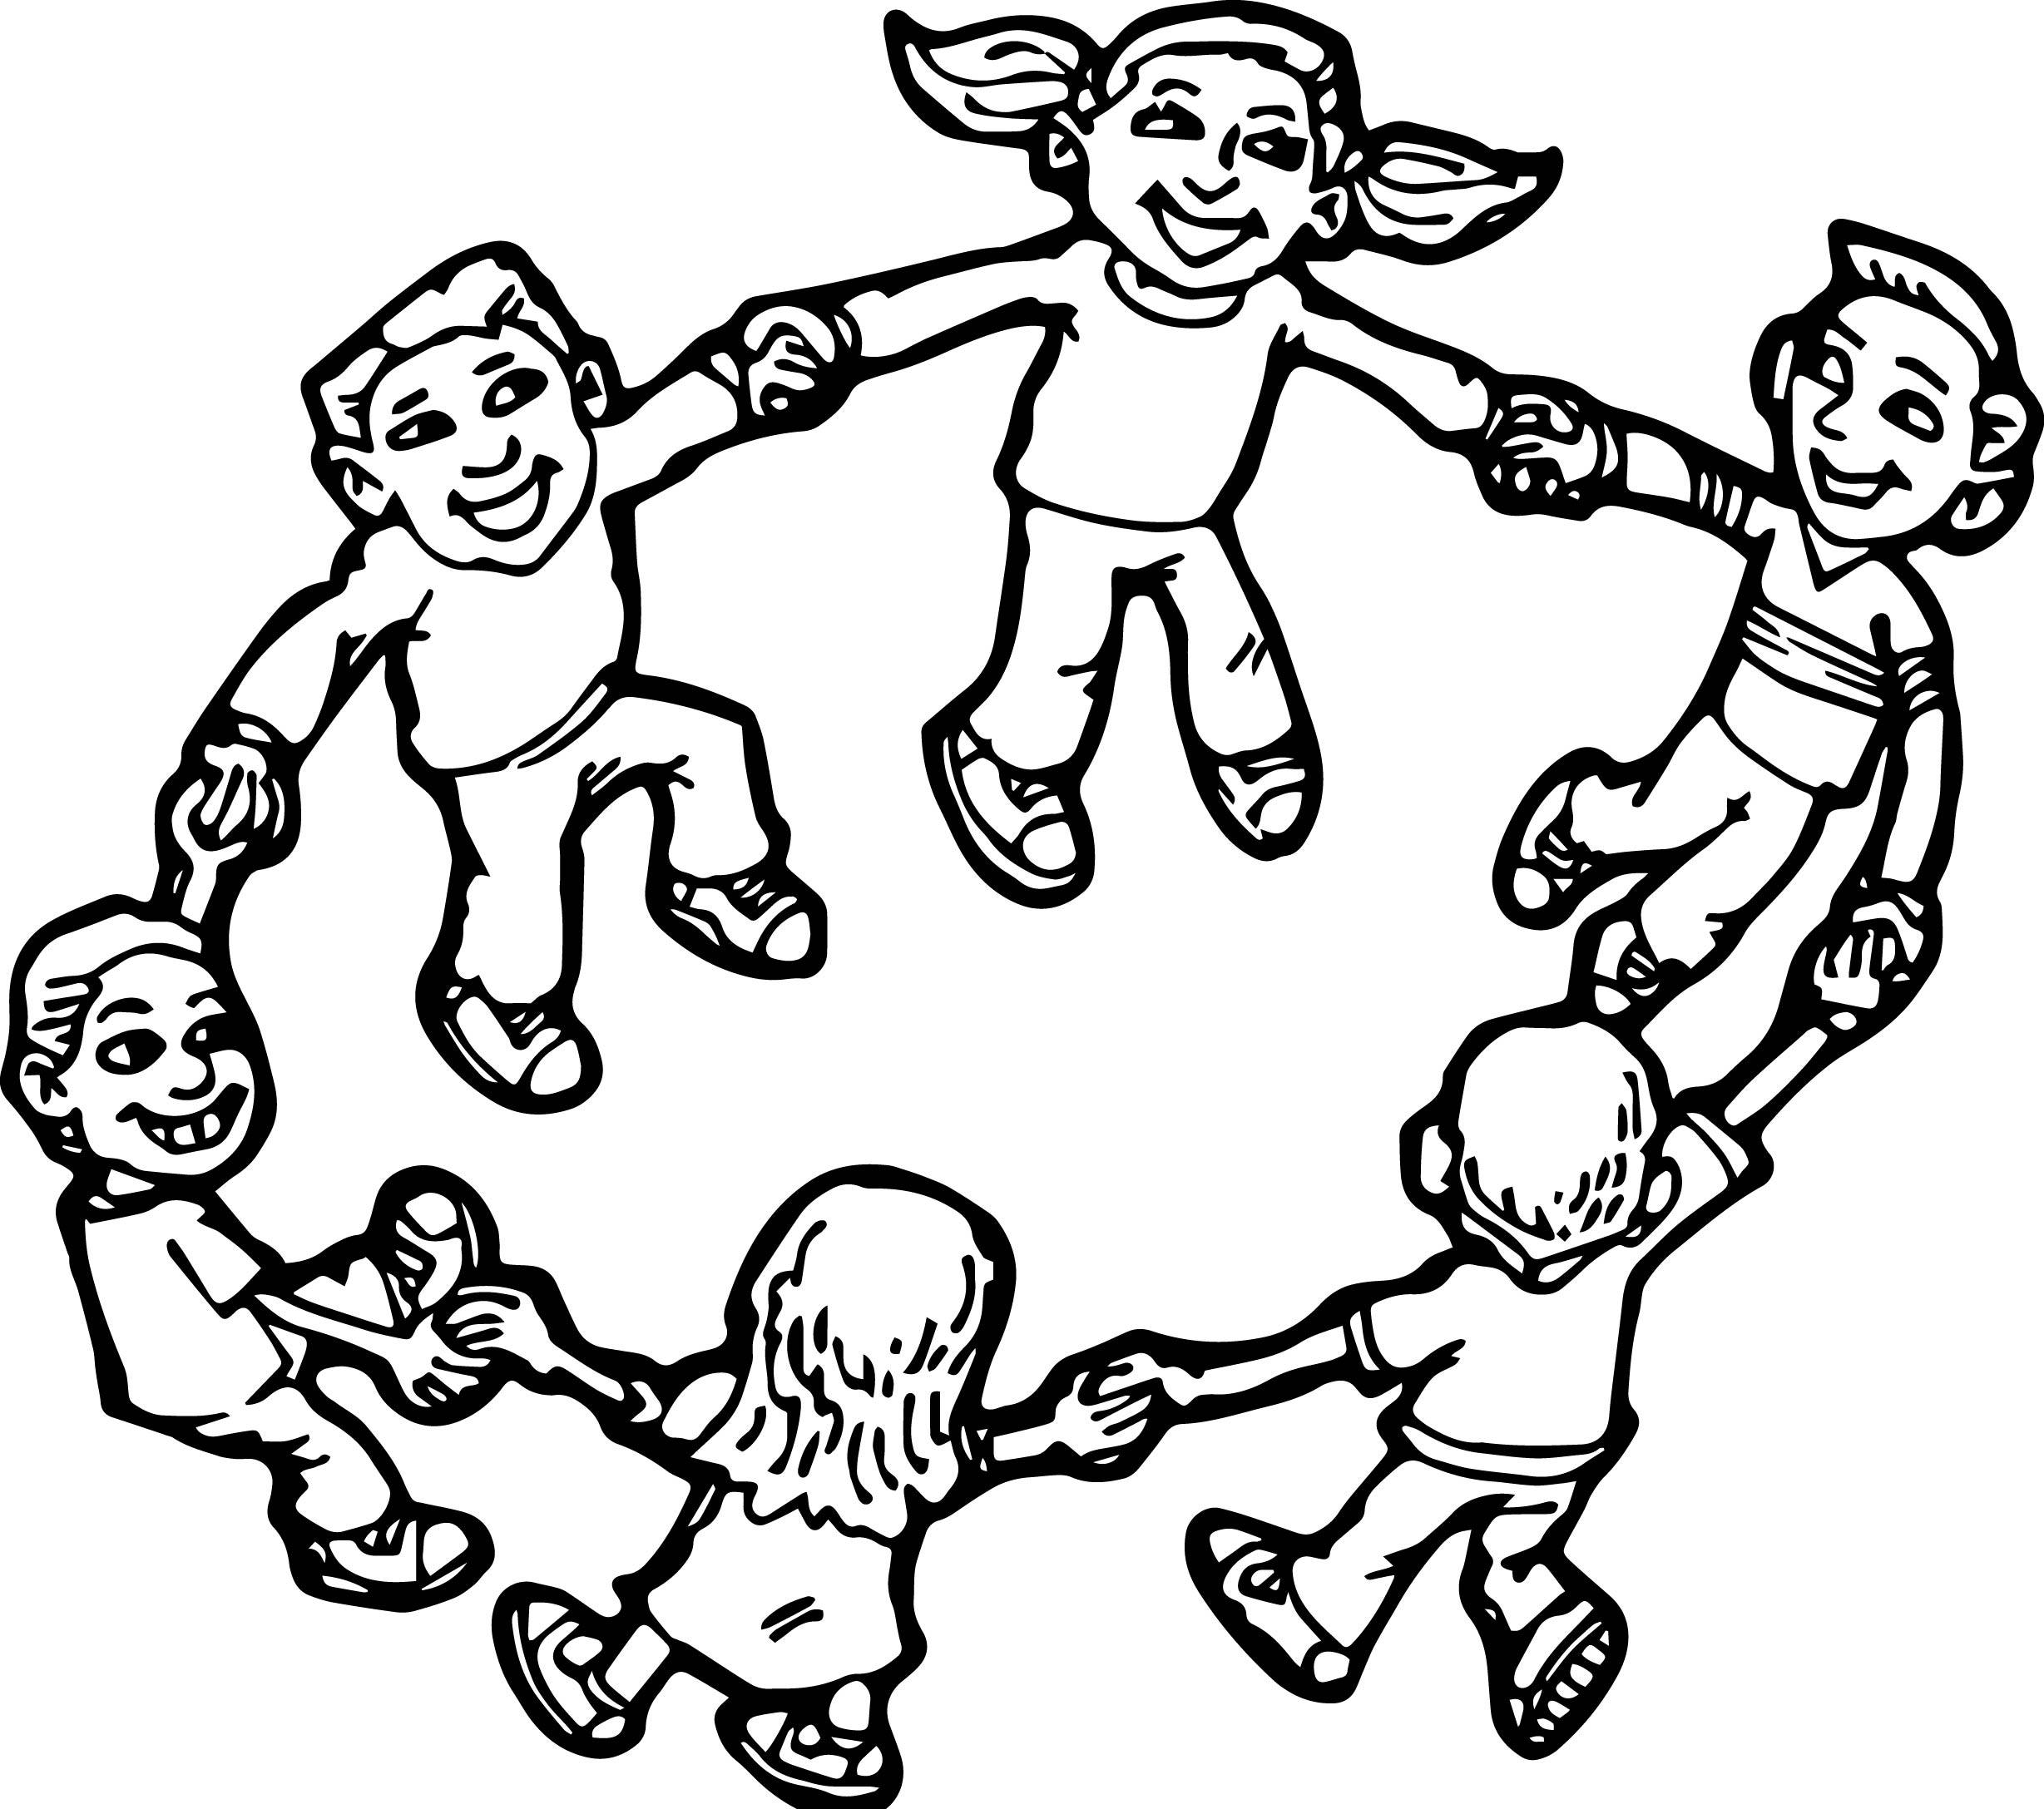 children playing children coloring page - Coloring Pictures Of Children